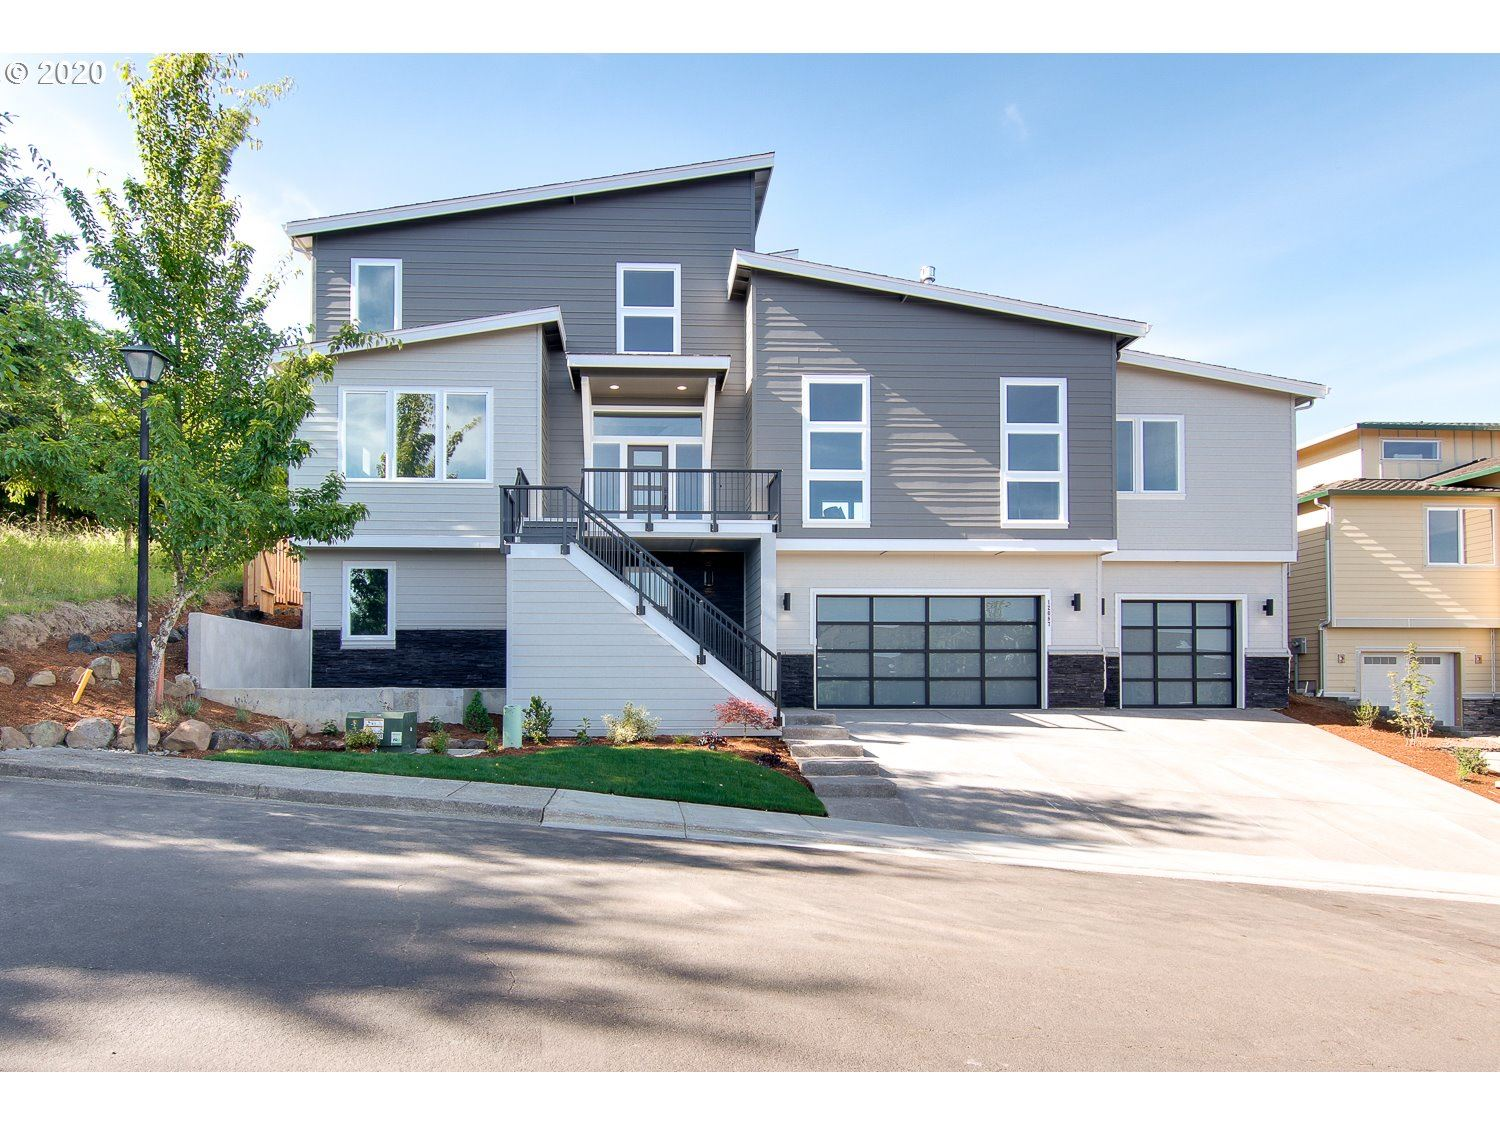 12017 SW ASPEN RIDGE DR, Tigard, OR 97224 - MLS#: 20614157